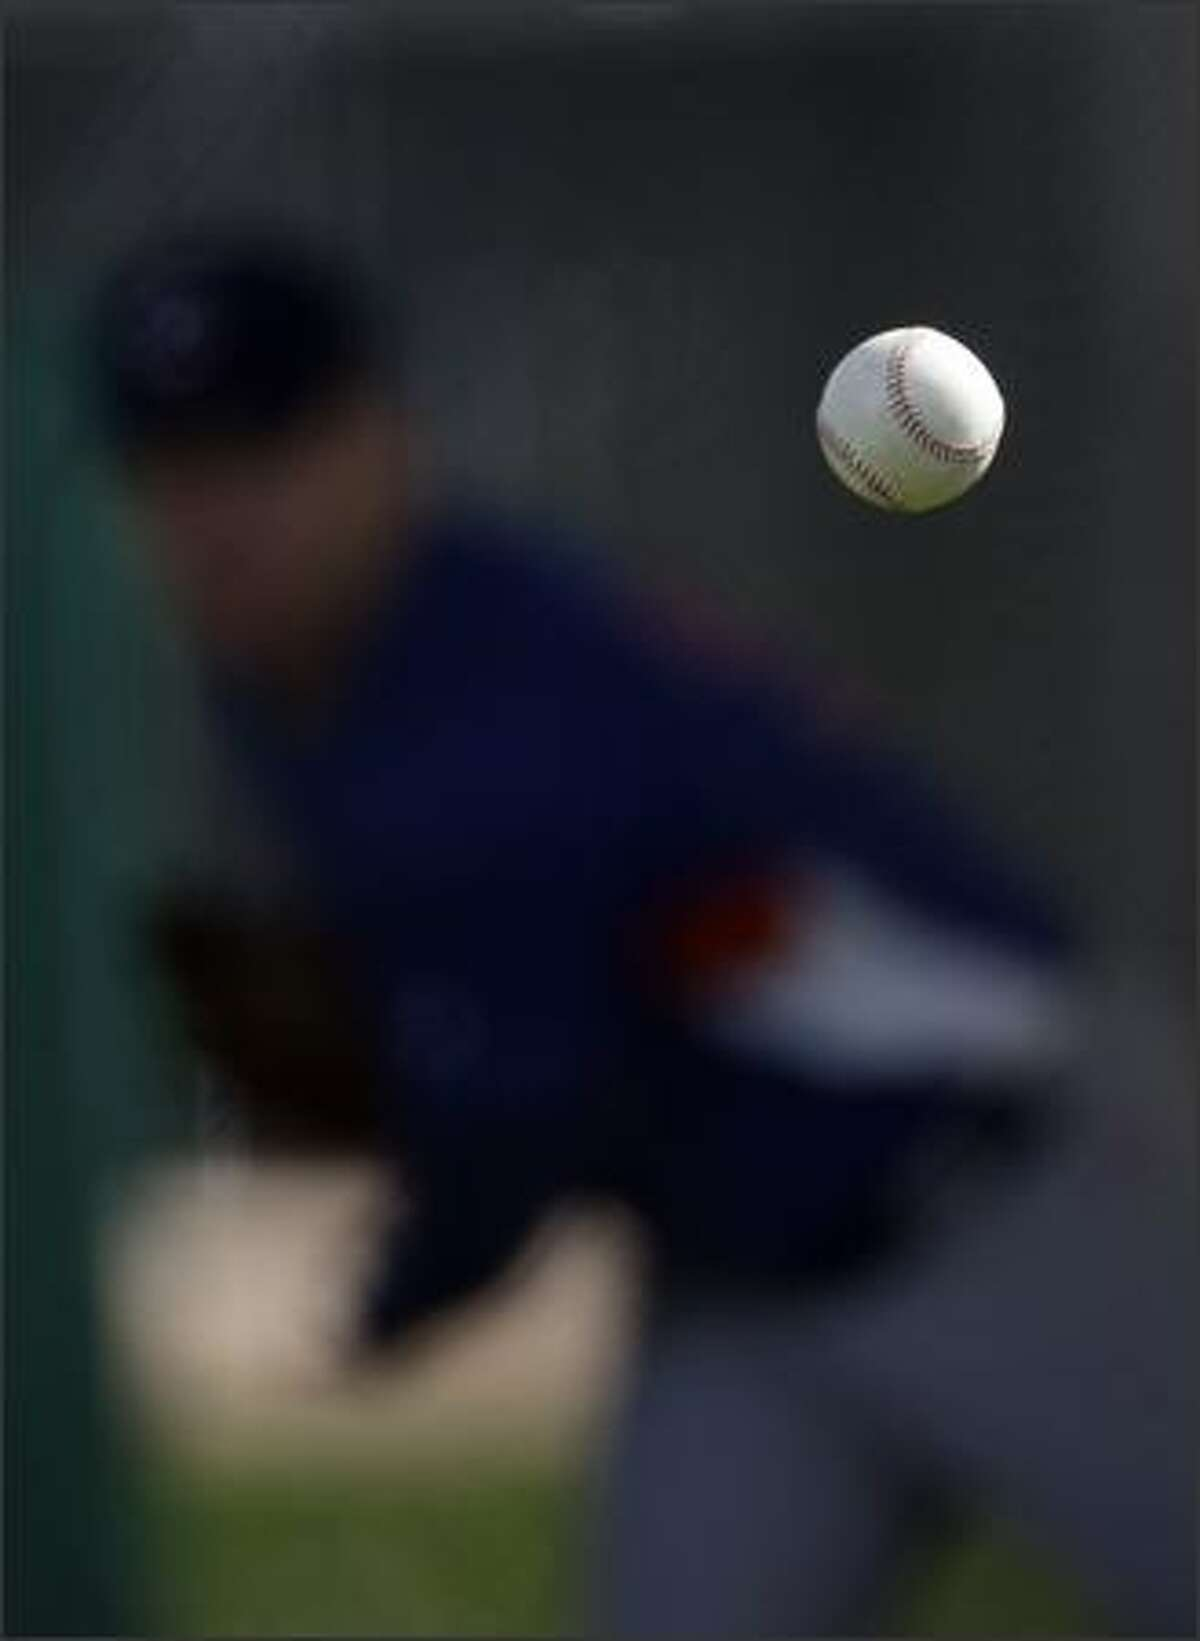 A baseball thrown by Mike Stanton of the Chicago Cubs is seen during spring training baseball Saturday in Mesa, Ariz. (AP Photo/Morry Gash)